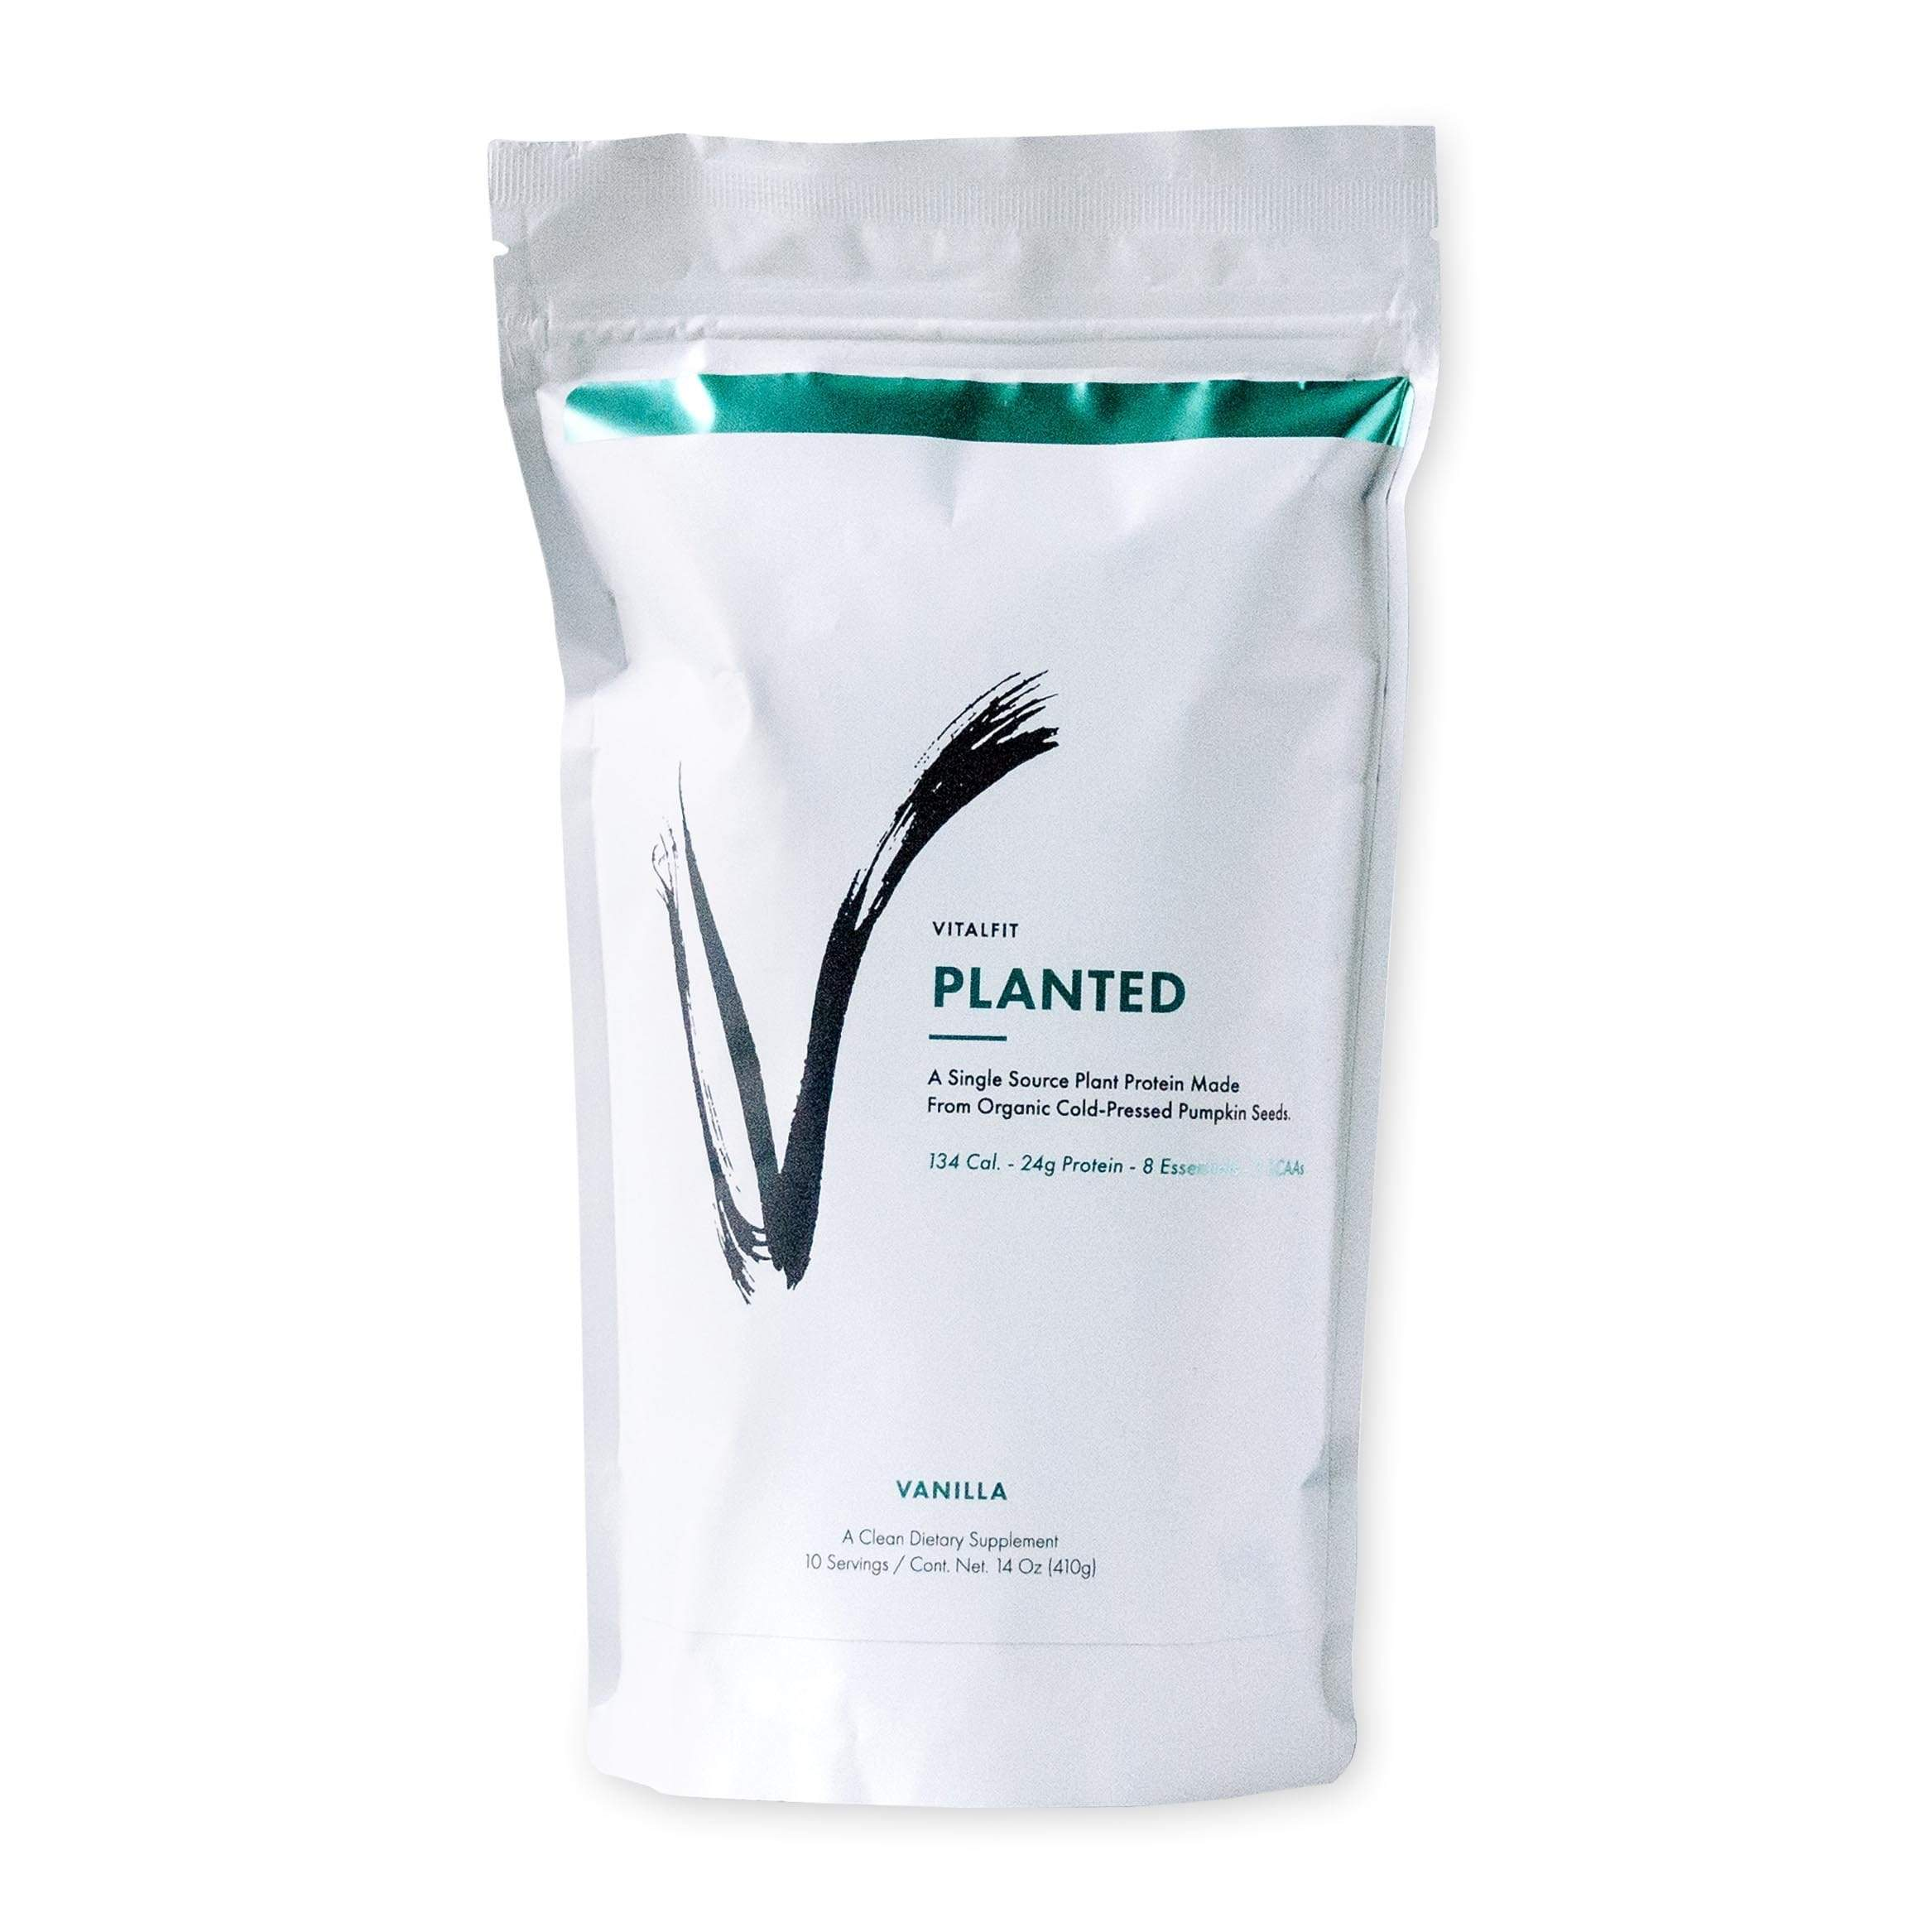 VitalFit Planted Protein - Planted Protein 10 Serving